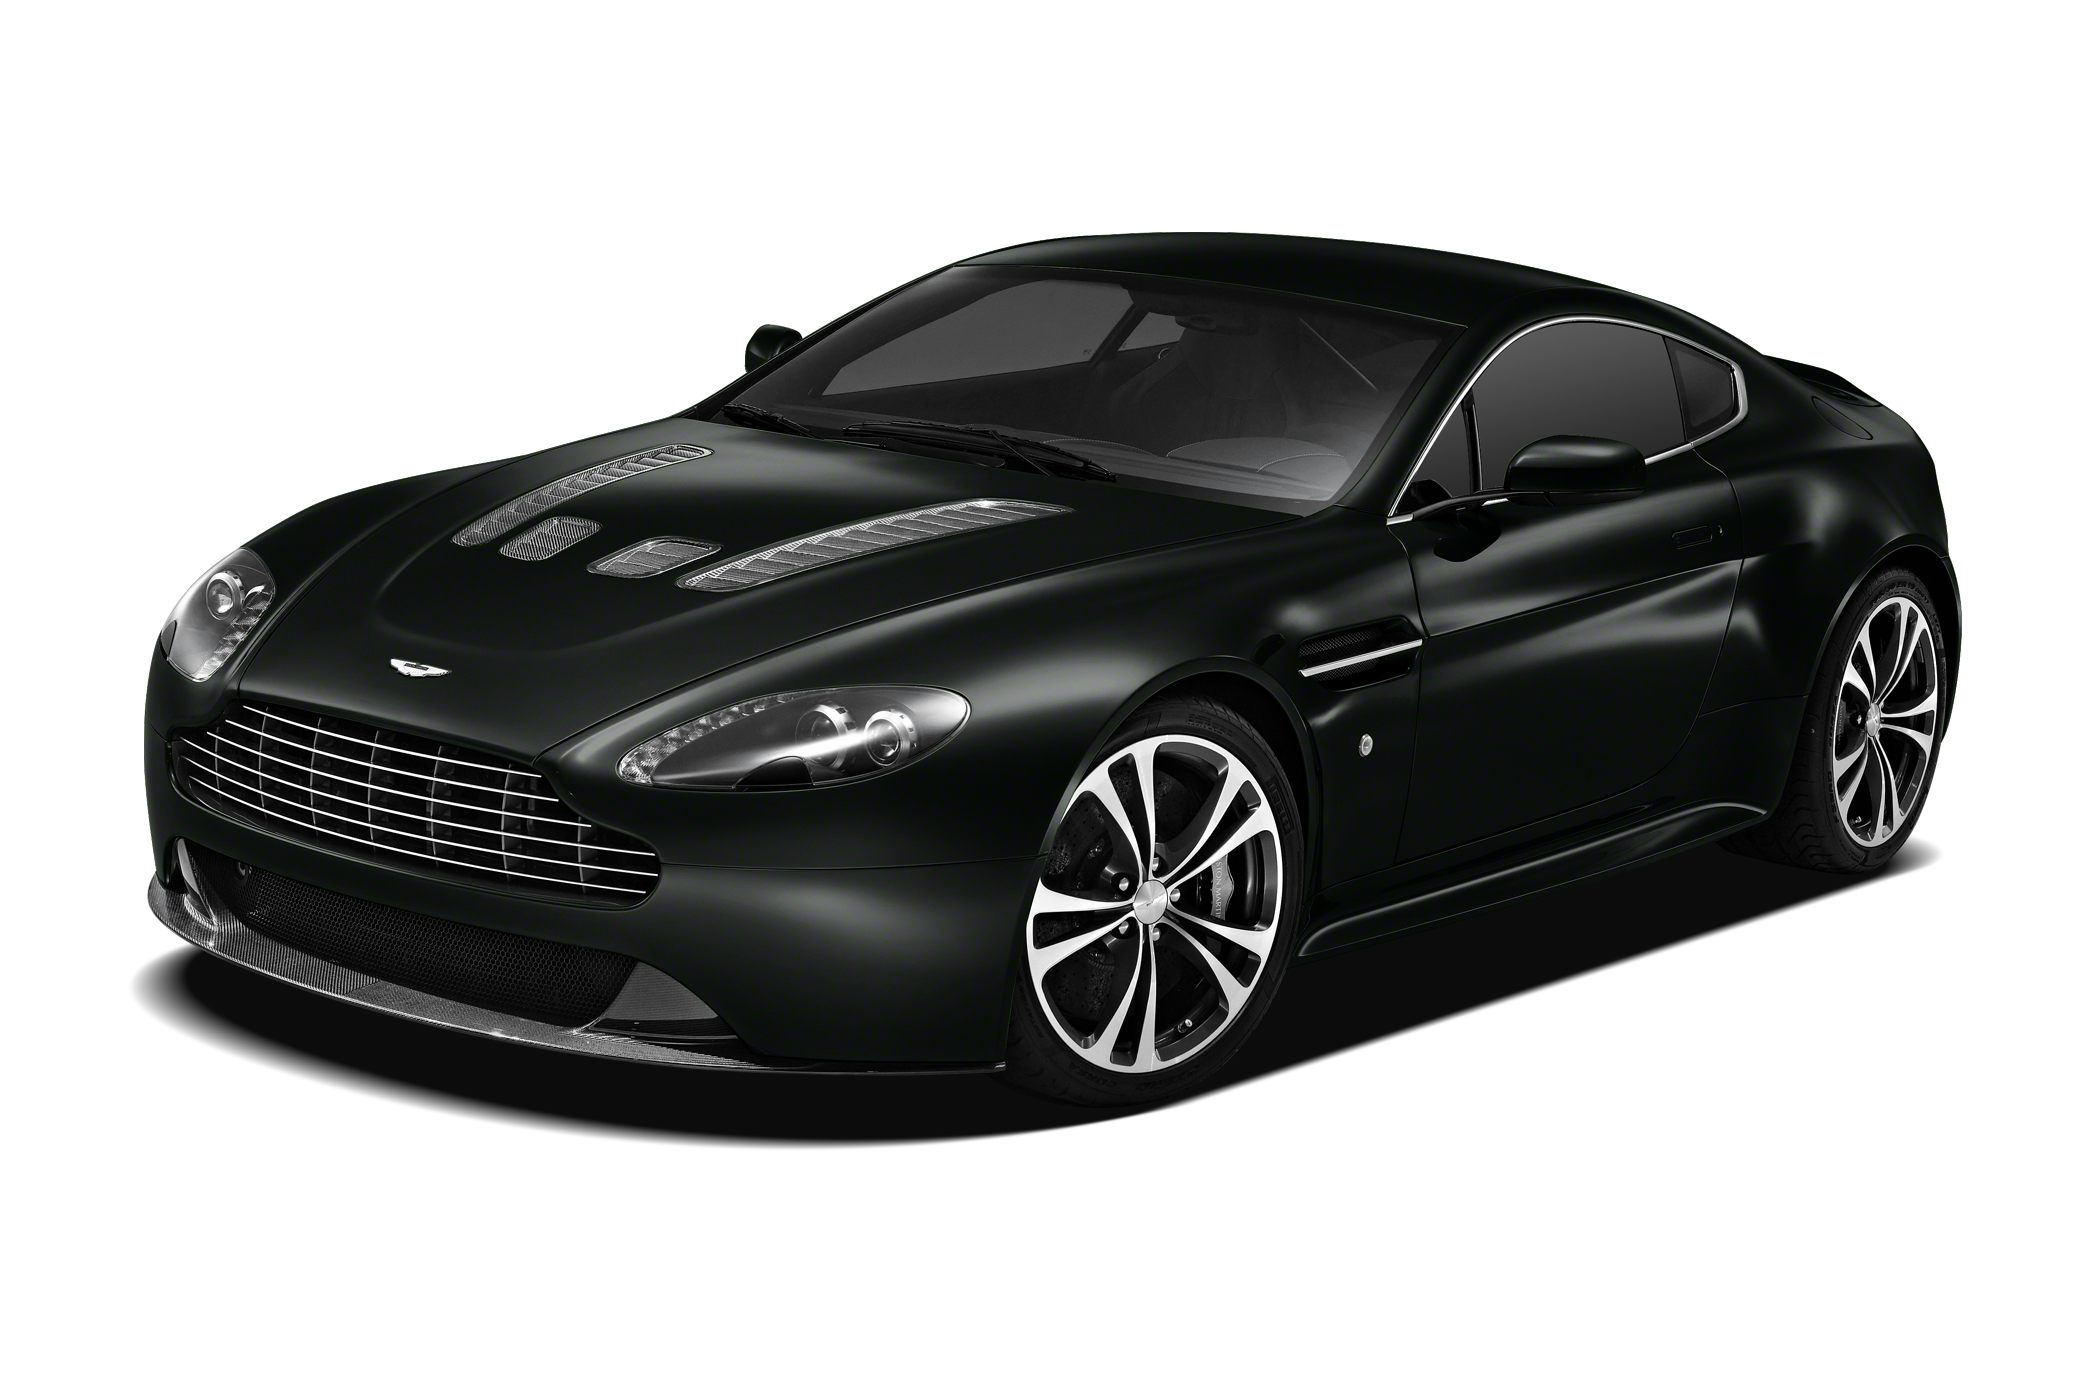 2011 Aston Martin V12 Vantage Carbon Black Coupe for sale in Beverly Hills for $138,880 with 11,705 miles